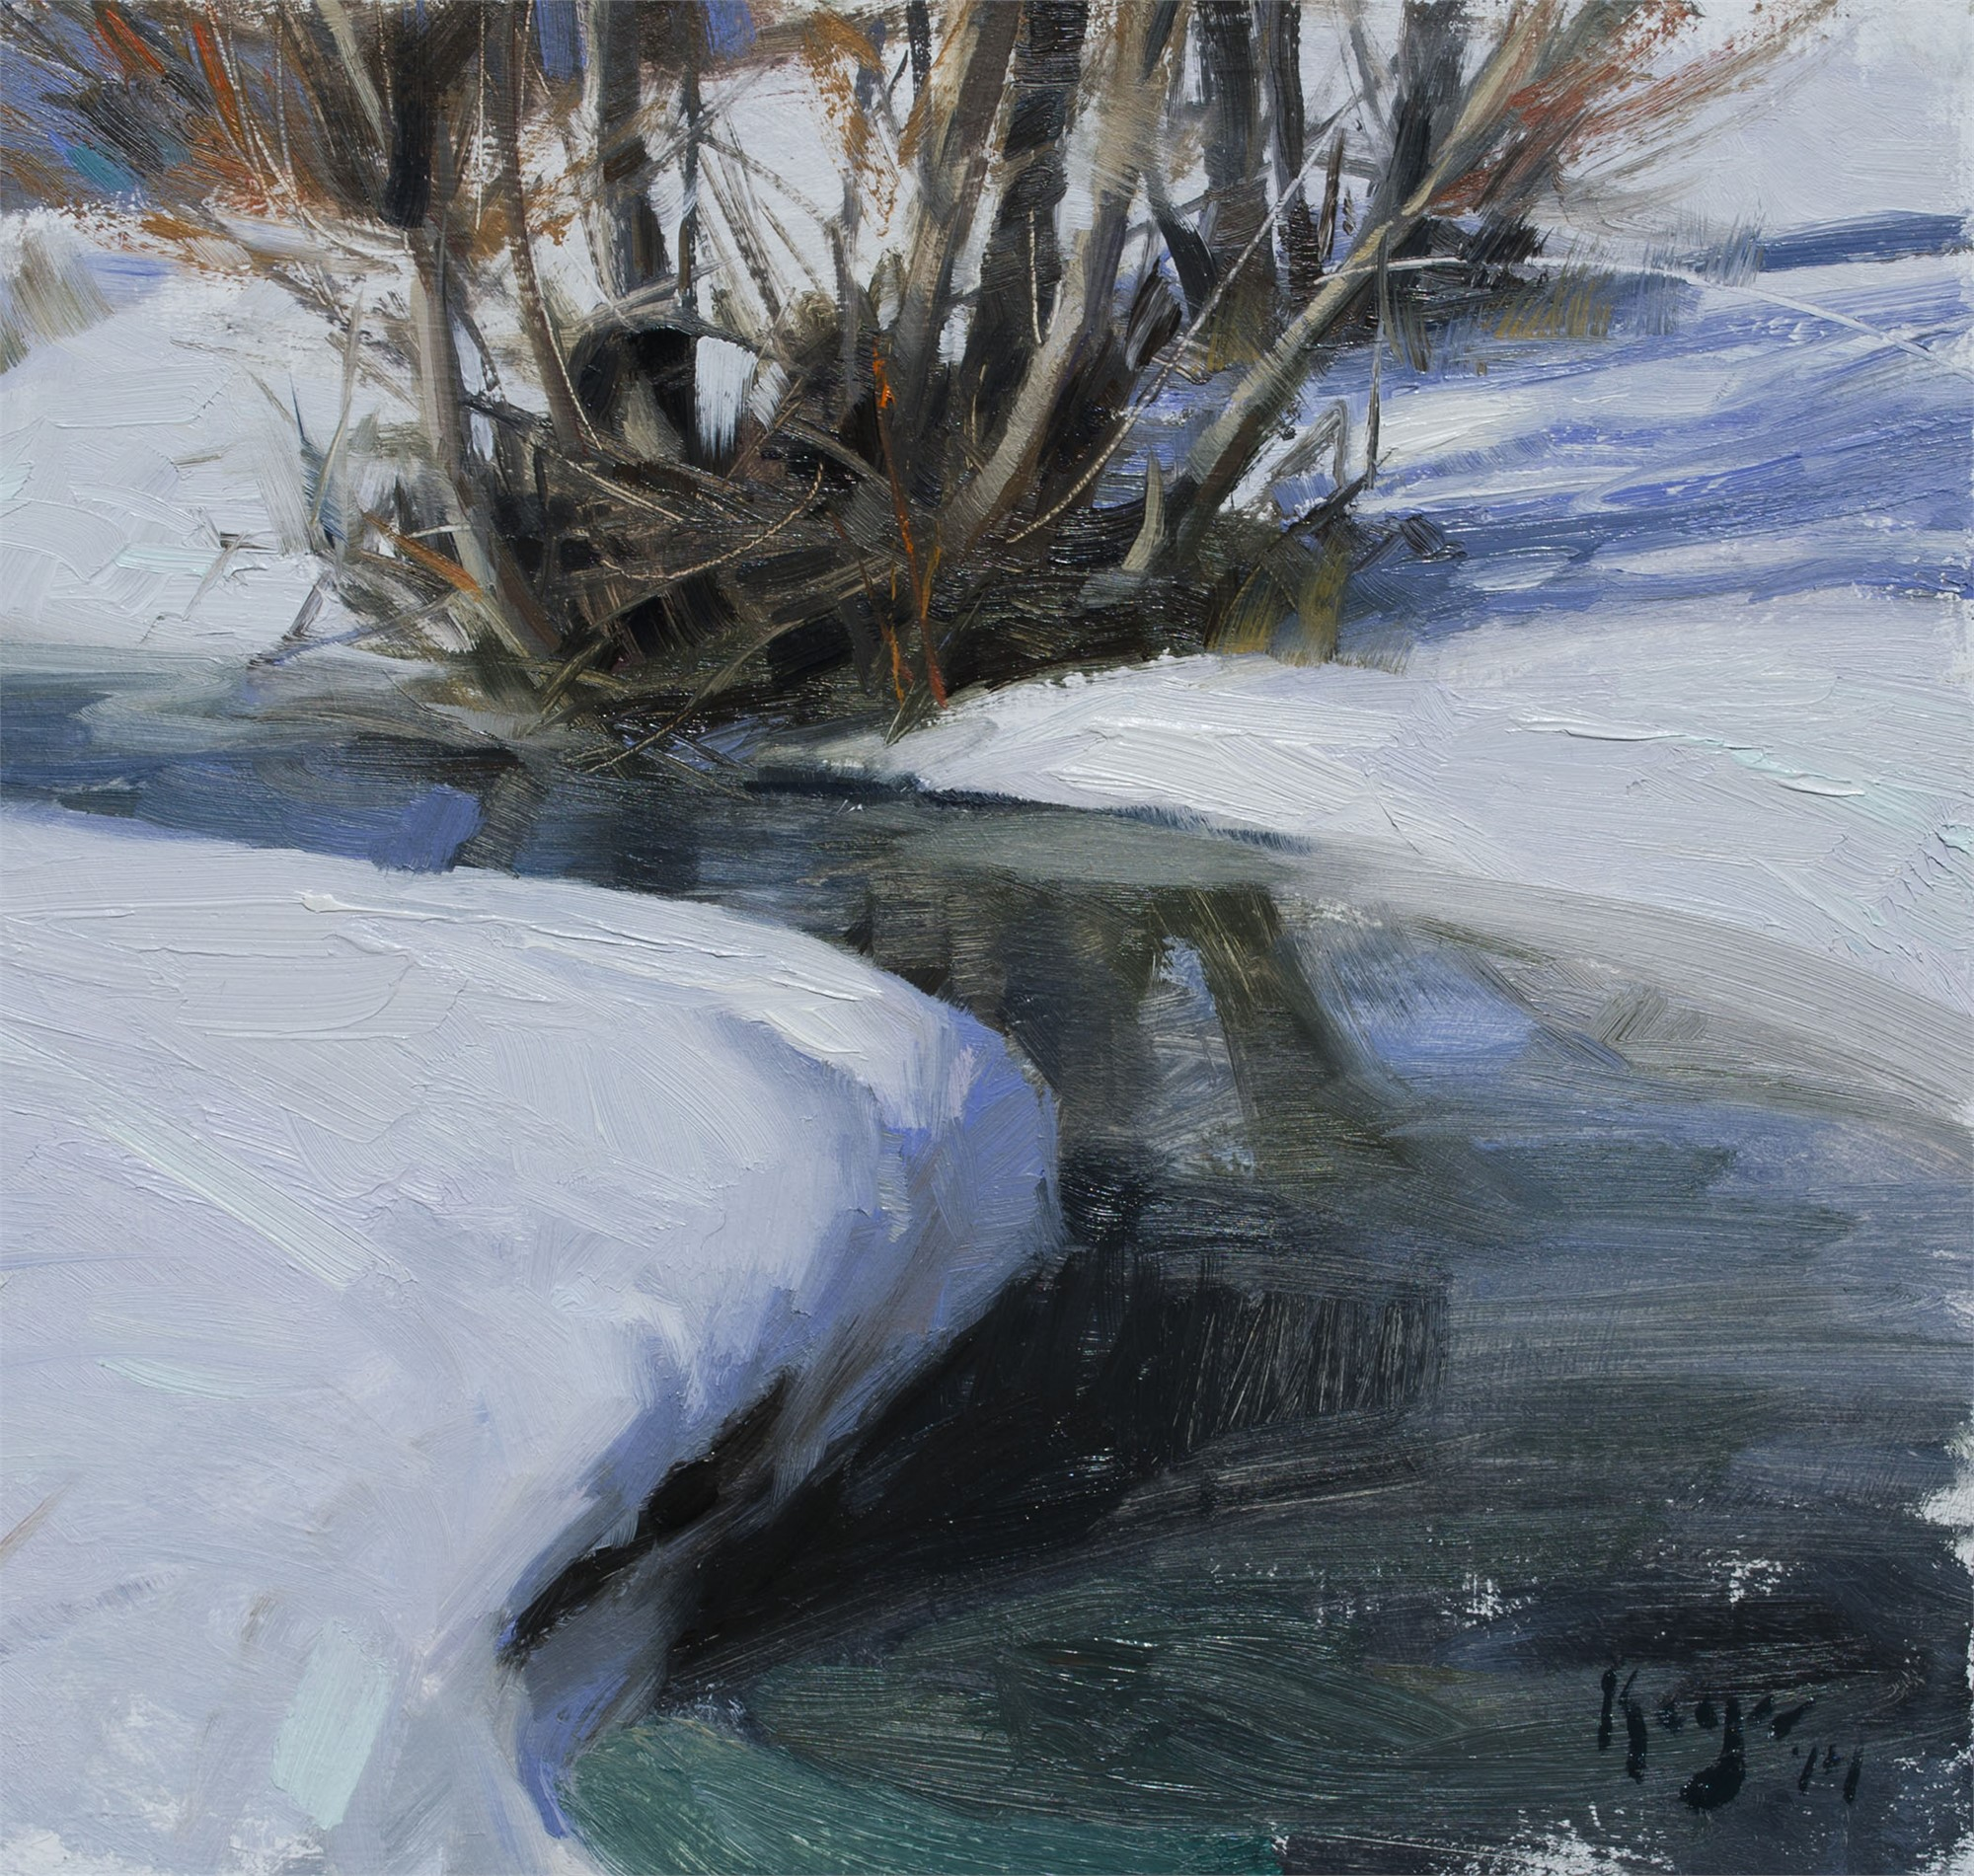 Thawing Stream by Daniel Keys